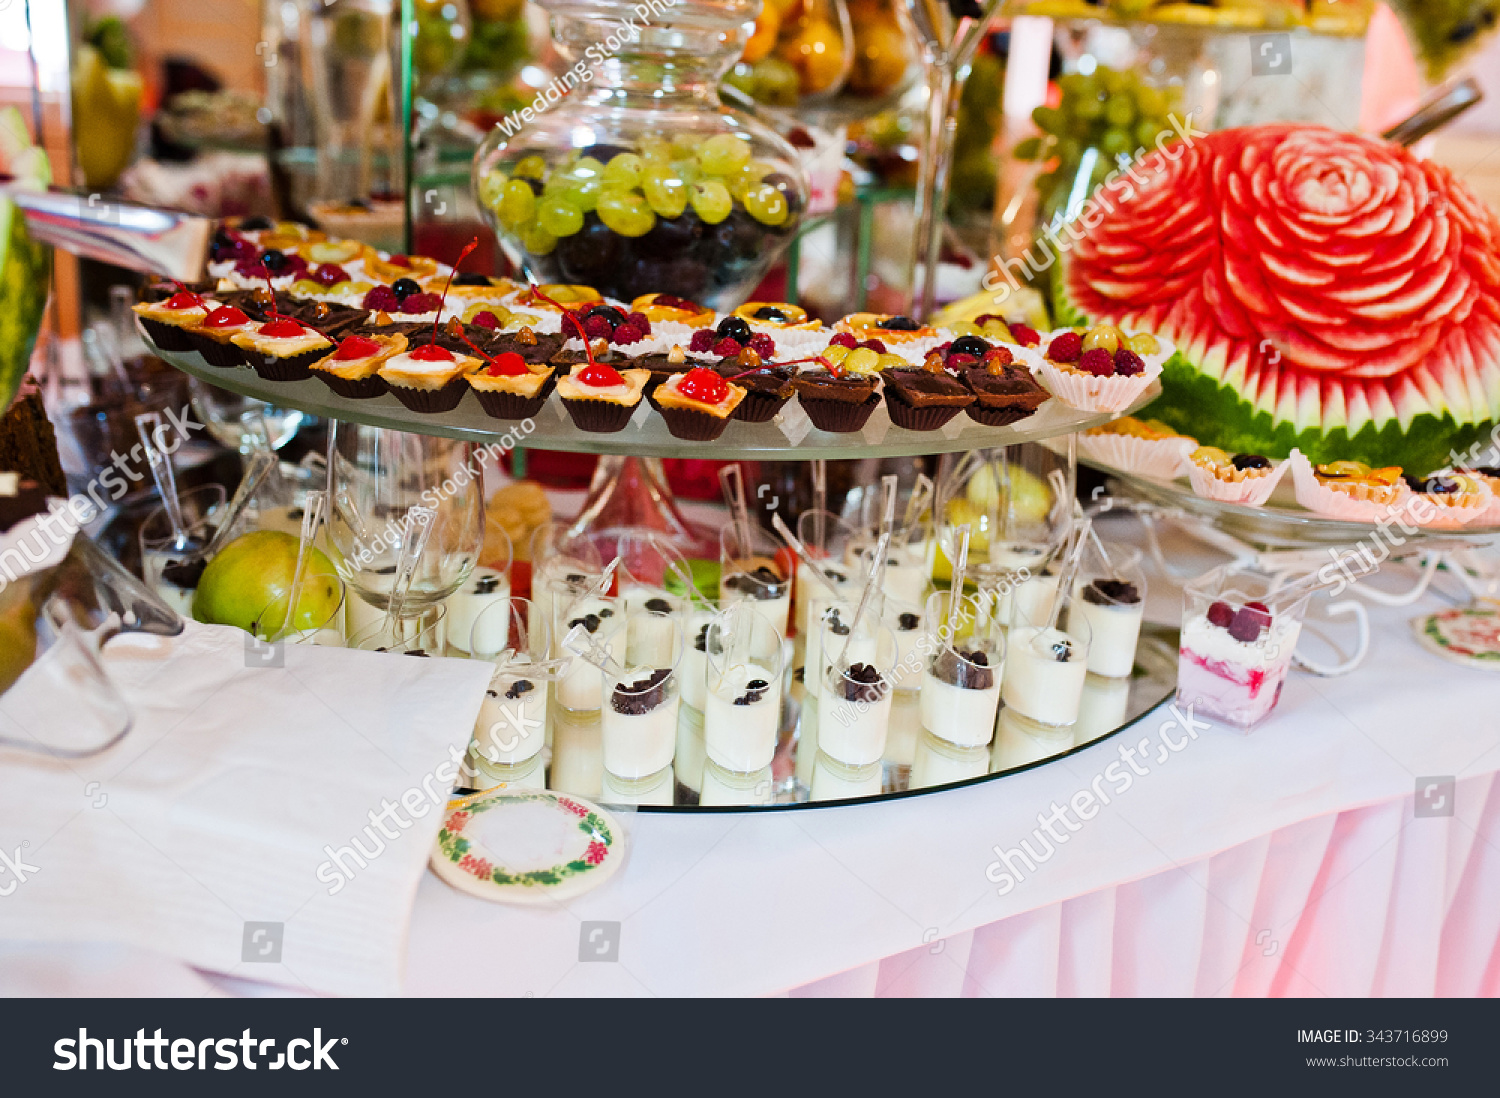 Wedding Reception Table Fruits Sweets Stock Photo Edit Now